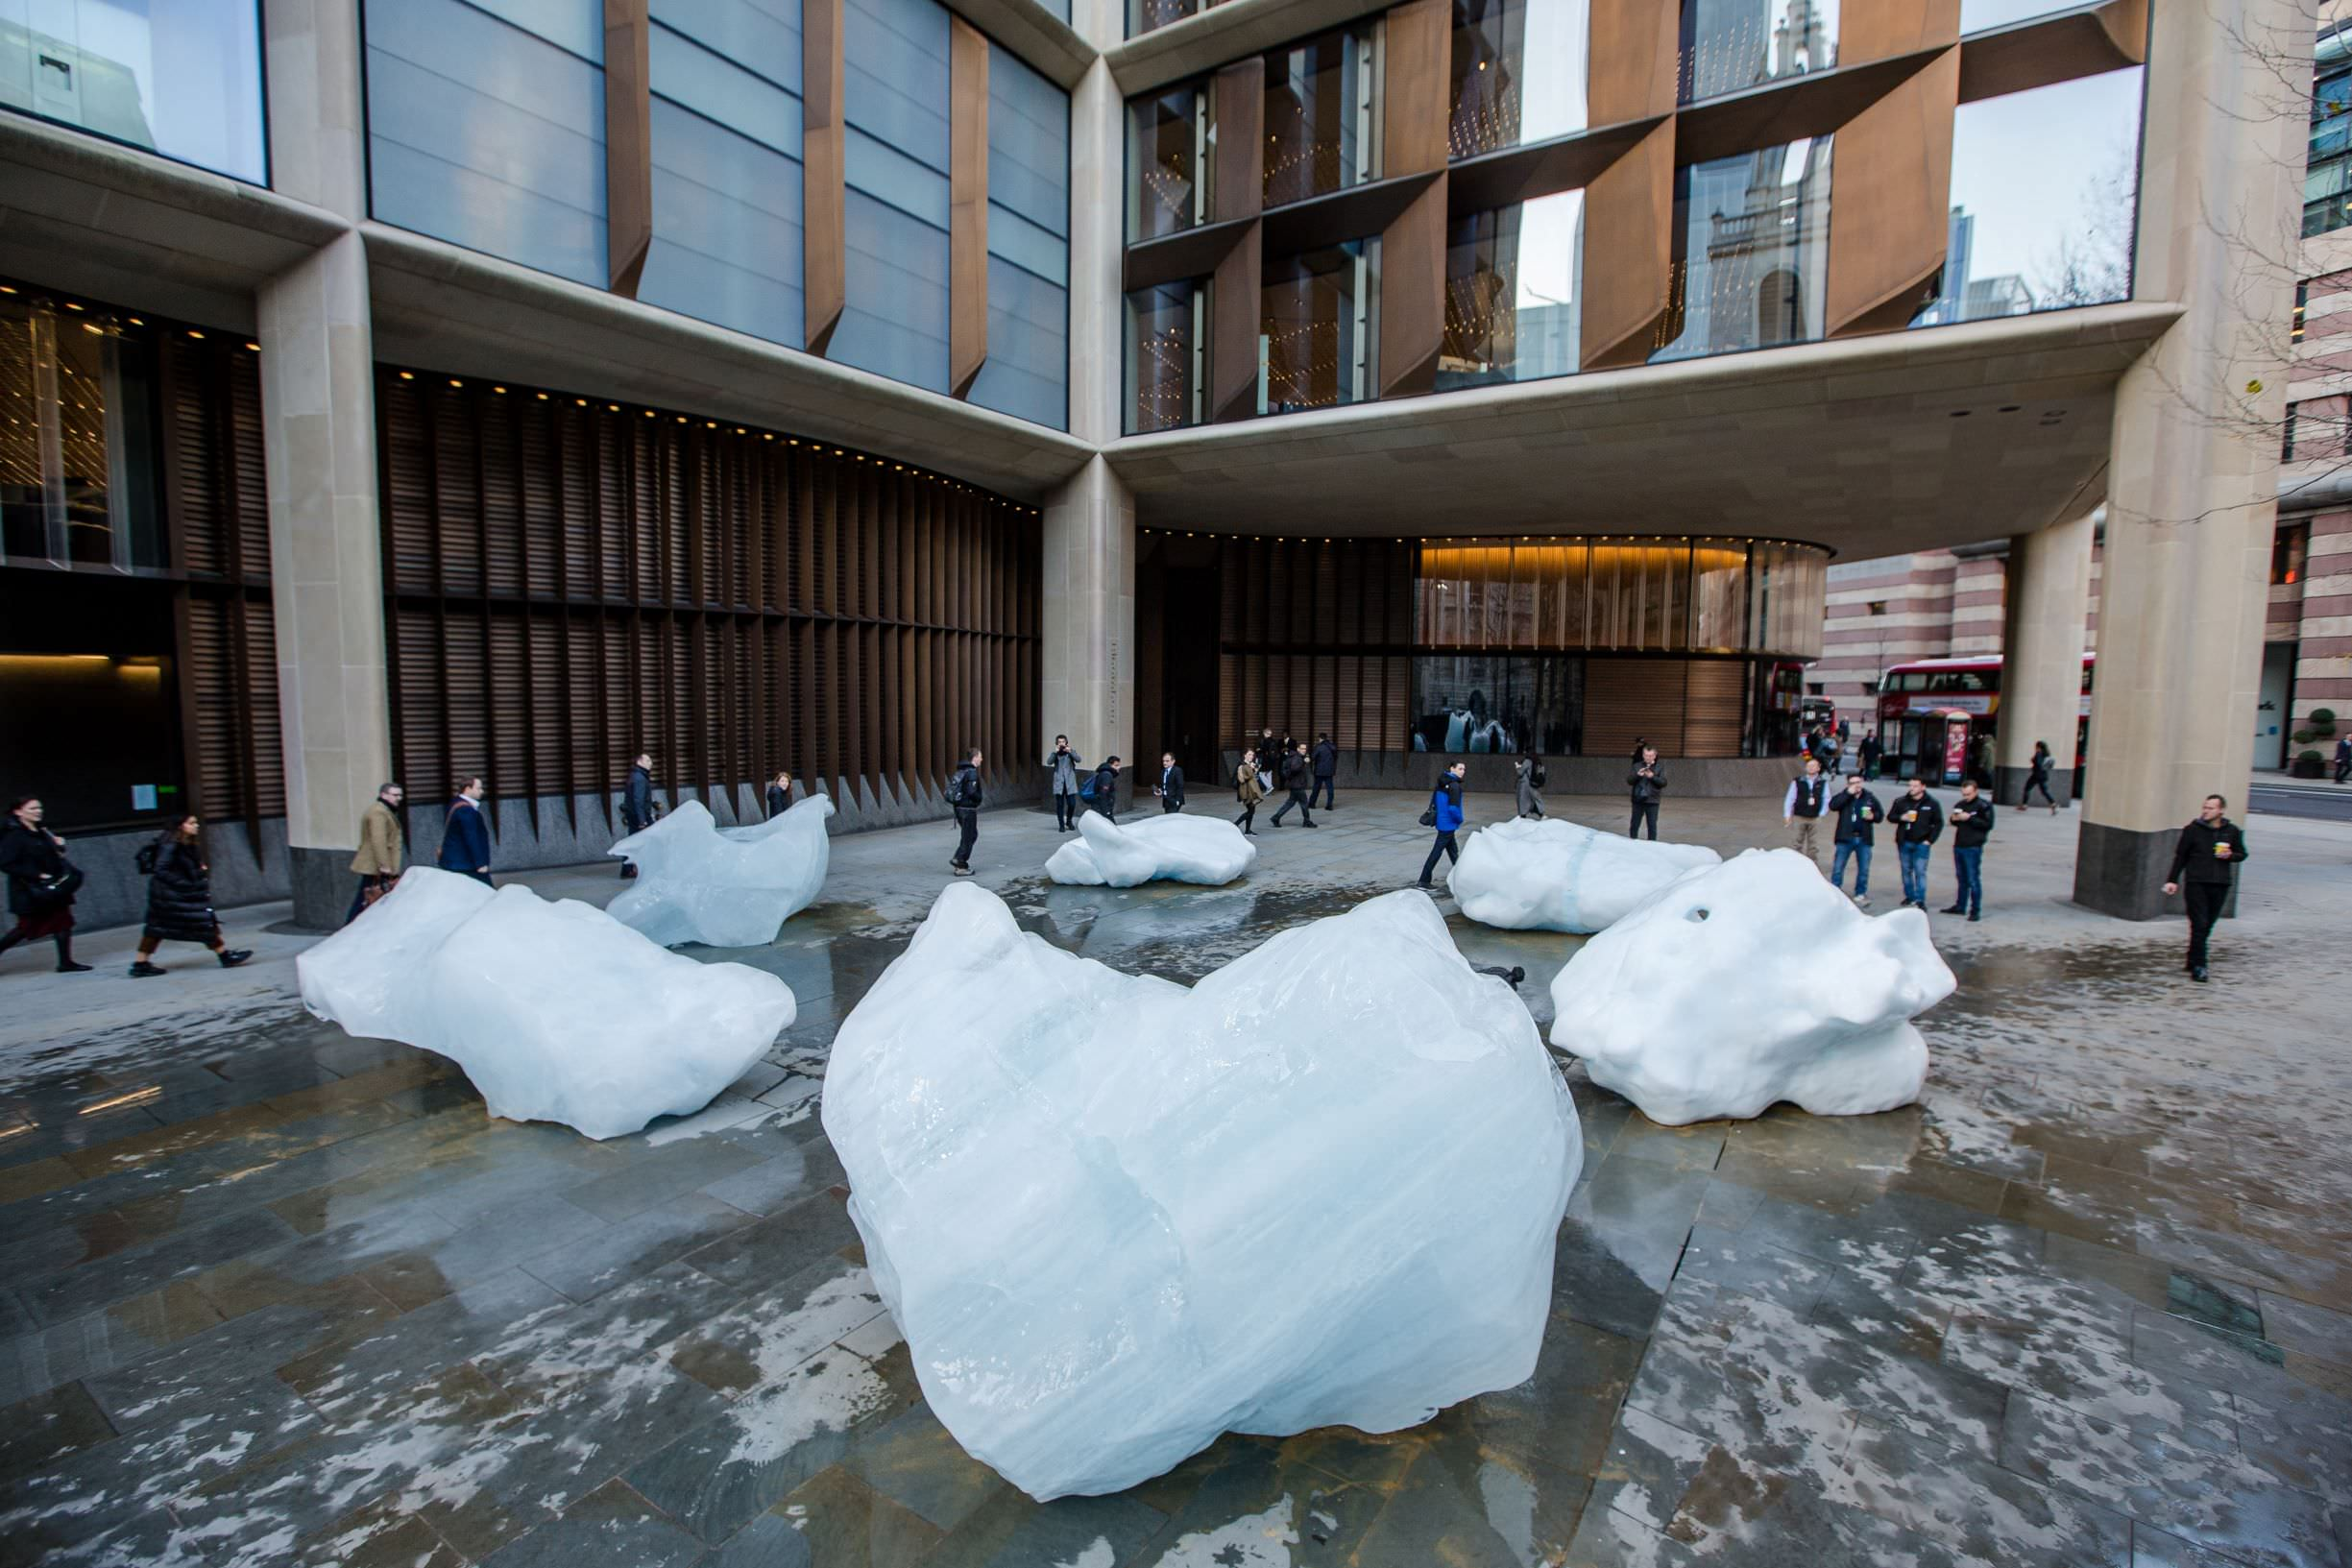 Ice Watch by Olafur Eliasson and Minik Rosing. Supported by Bloomberg, Installation: City of London, outside Bloomberg's European headquarters, 2018. Photo: Charlie Forgham-Bailey © 2018 Olafur Eliasson